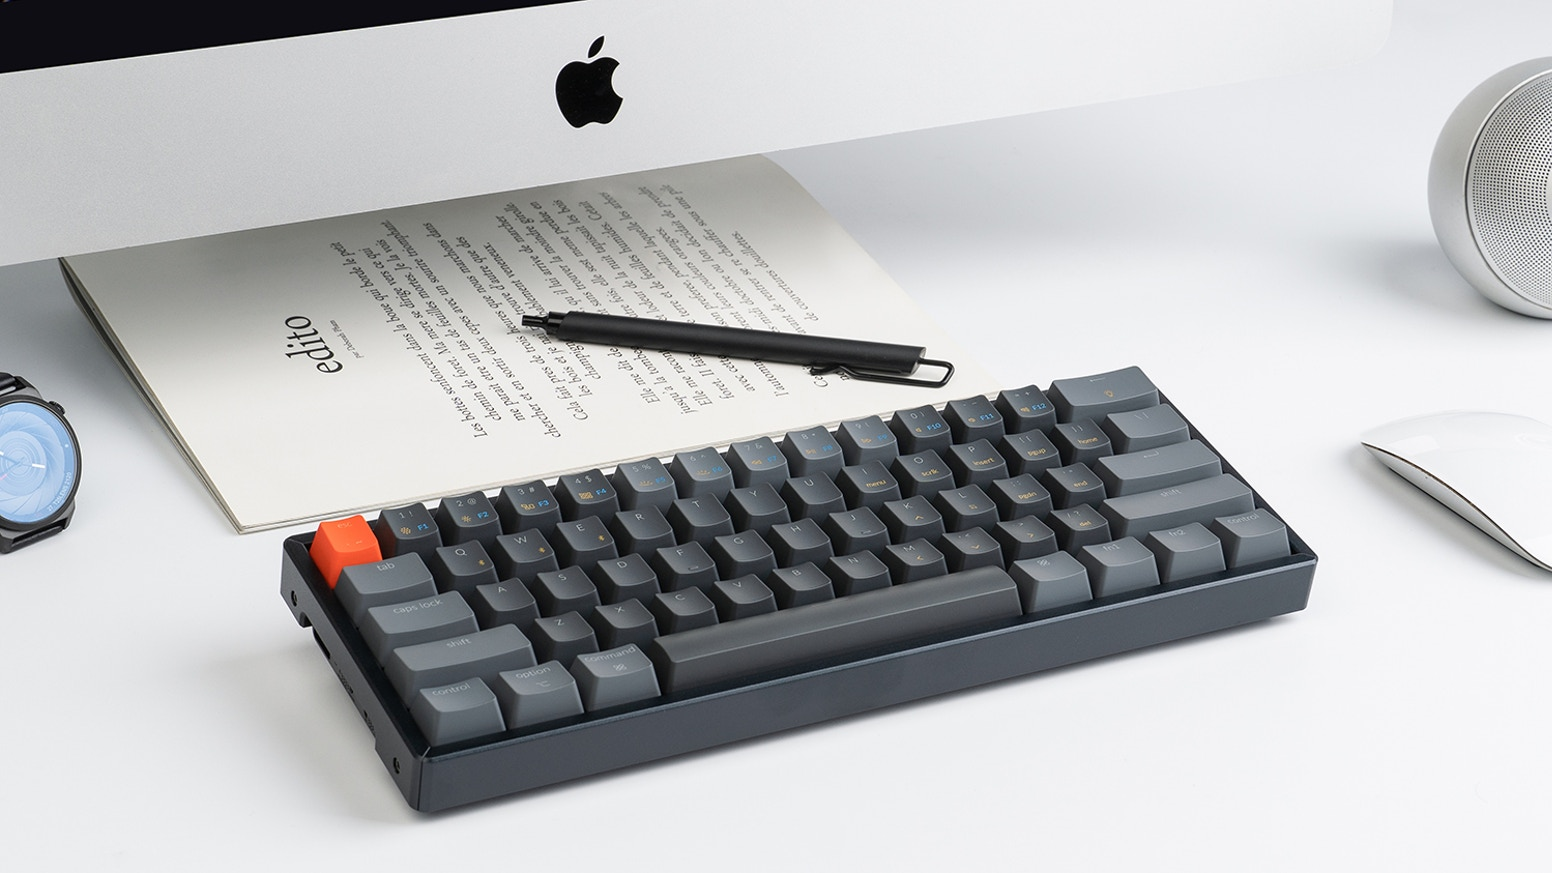 Keychron K12 - A Versatile 60% Wireless Mechanical Keyboard